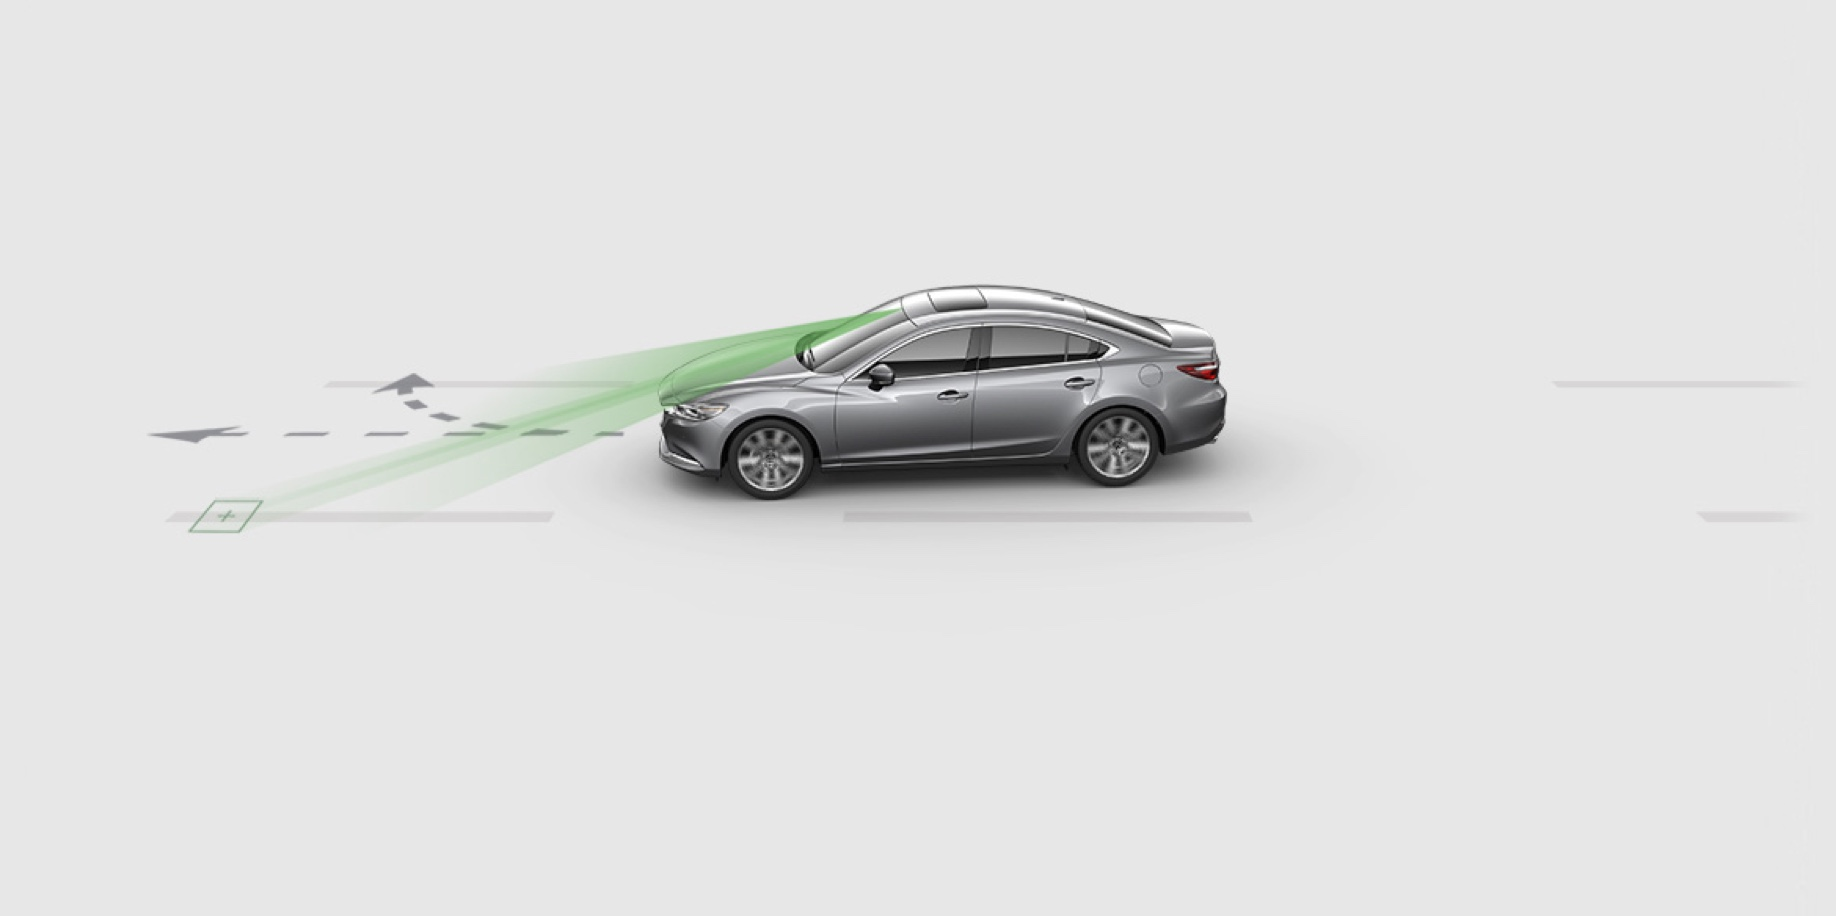 LANE-KEEP ASSIST - Mazda6